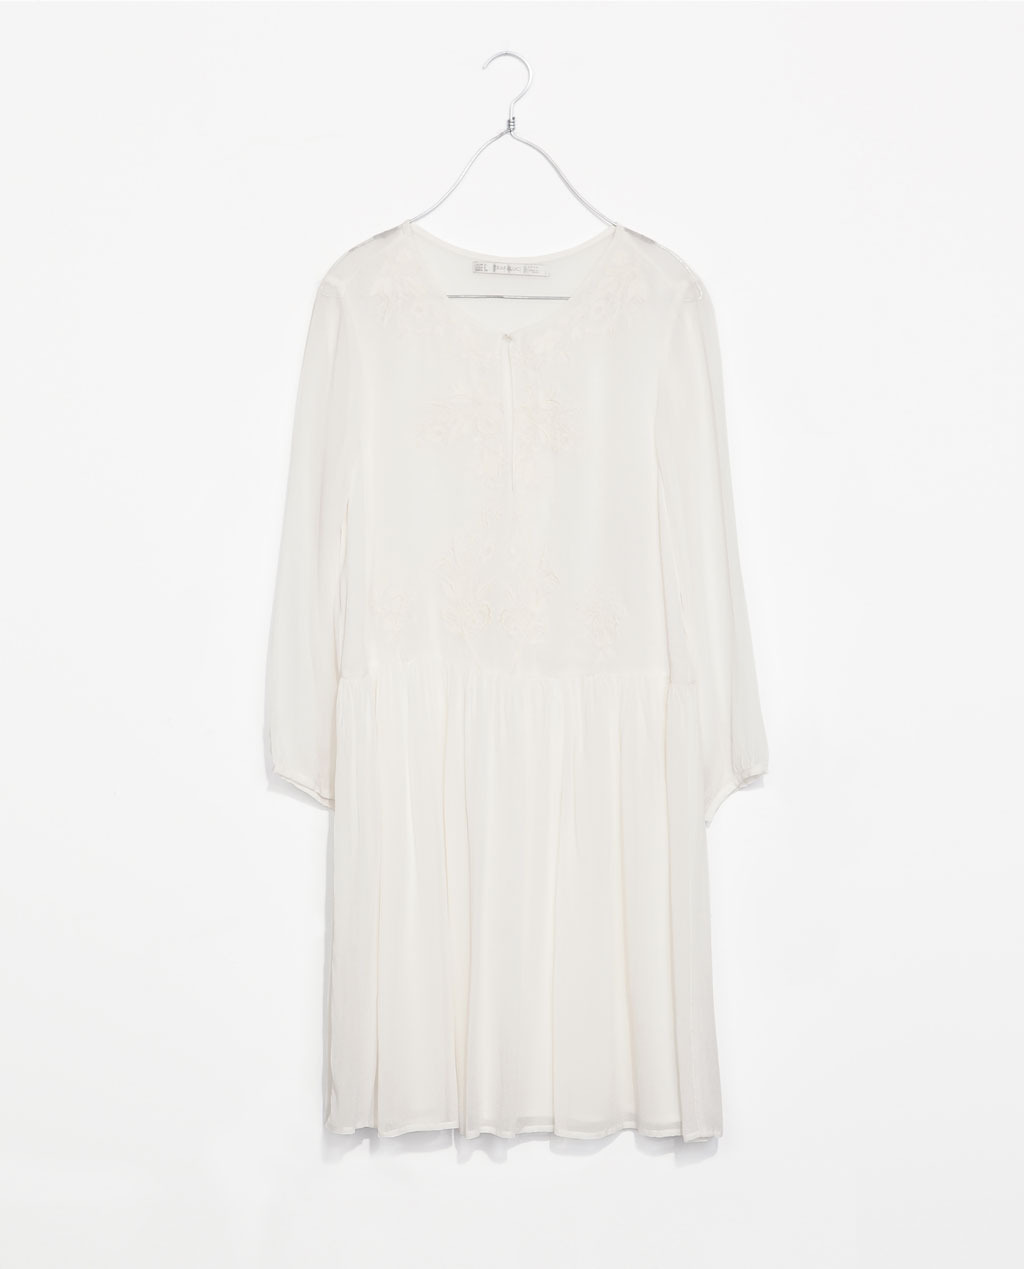 Embroidered Dress - style: shift; neckline: round neck; pattern: plain; predominant colour: white; occasions: casual, holiday; length: just above the knee; fit: straight cut; fibres: viscose/rayon - 100%; sleeve length: 3/4 length; sleeve style: standard; pattern type: fabric; texture group: other - light to midweight; embellishment: embroidered; season: s/s 2014; wardrobe: highlight; embellishment location: bust